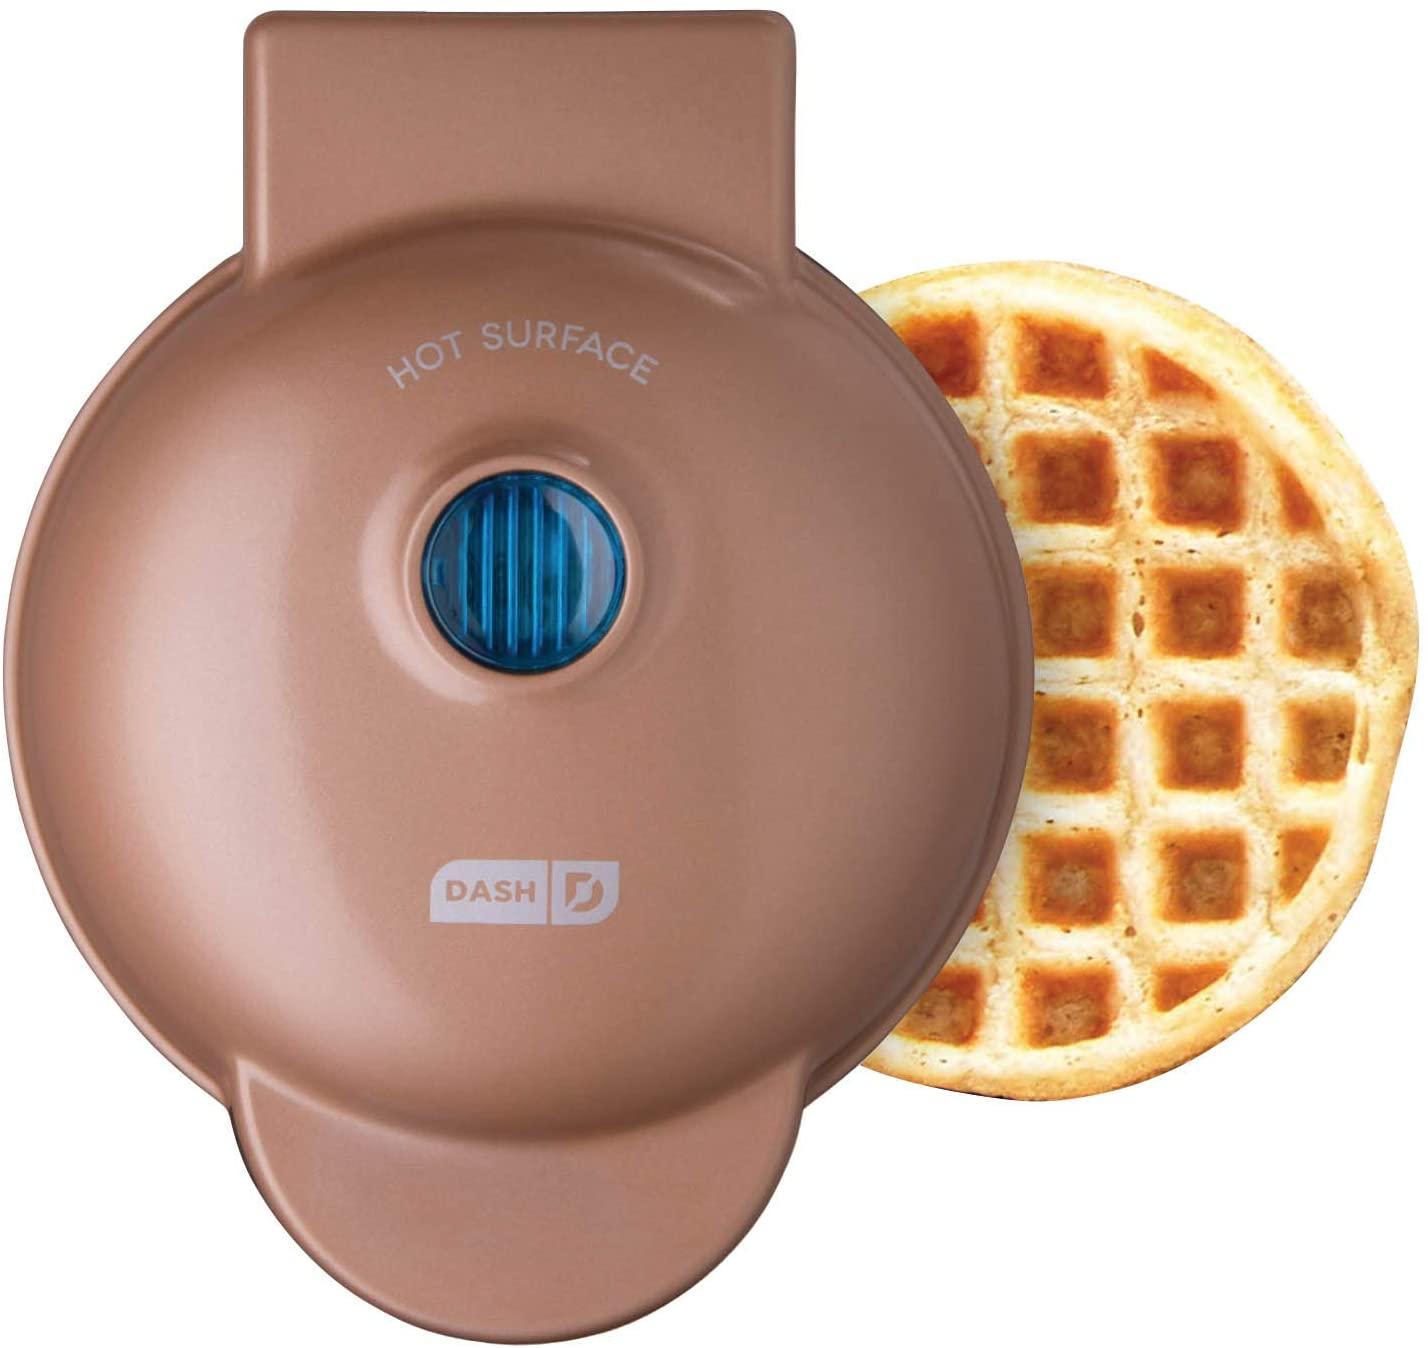 Amazon.com: Dash DMW001CU Machine for Individual, Paninis, Hash Browns, &  other Mini waffle maker, 4 inch, Copper: Kitchen & Dining